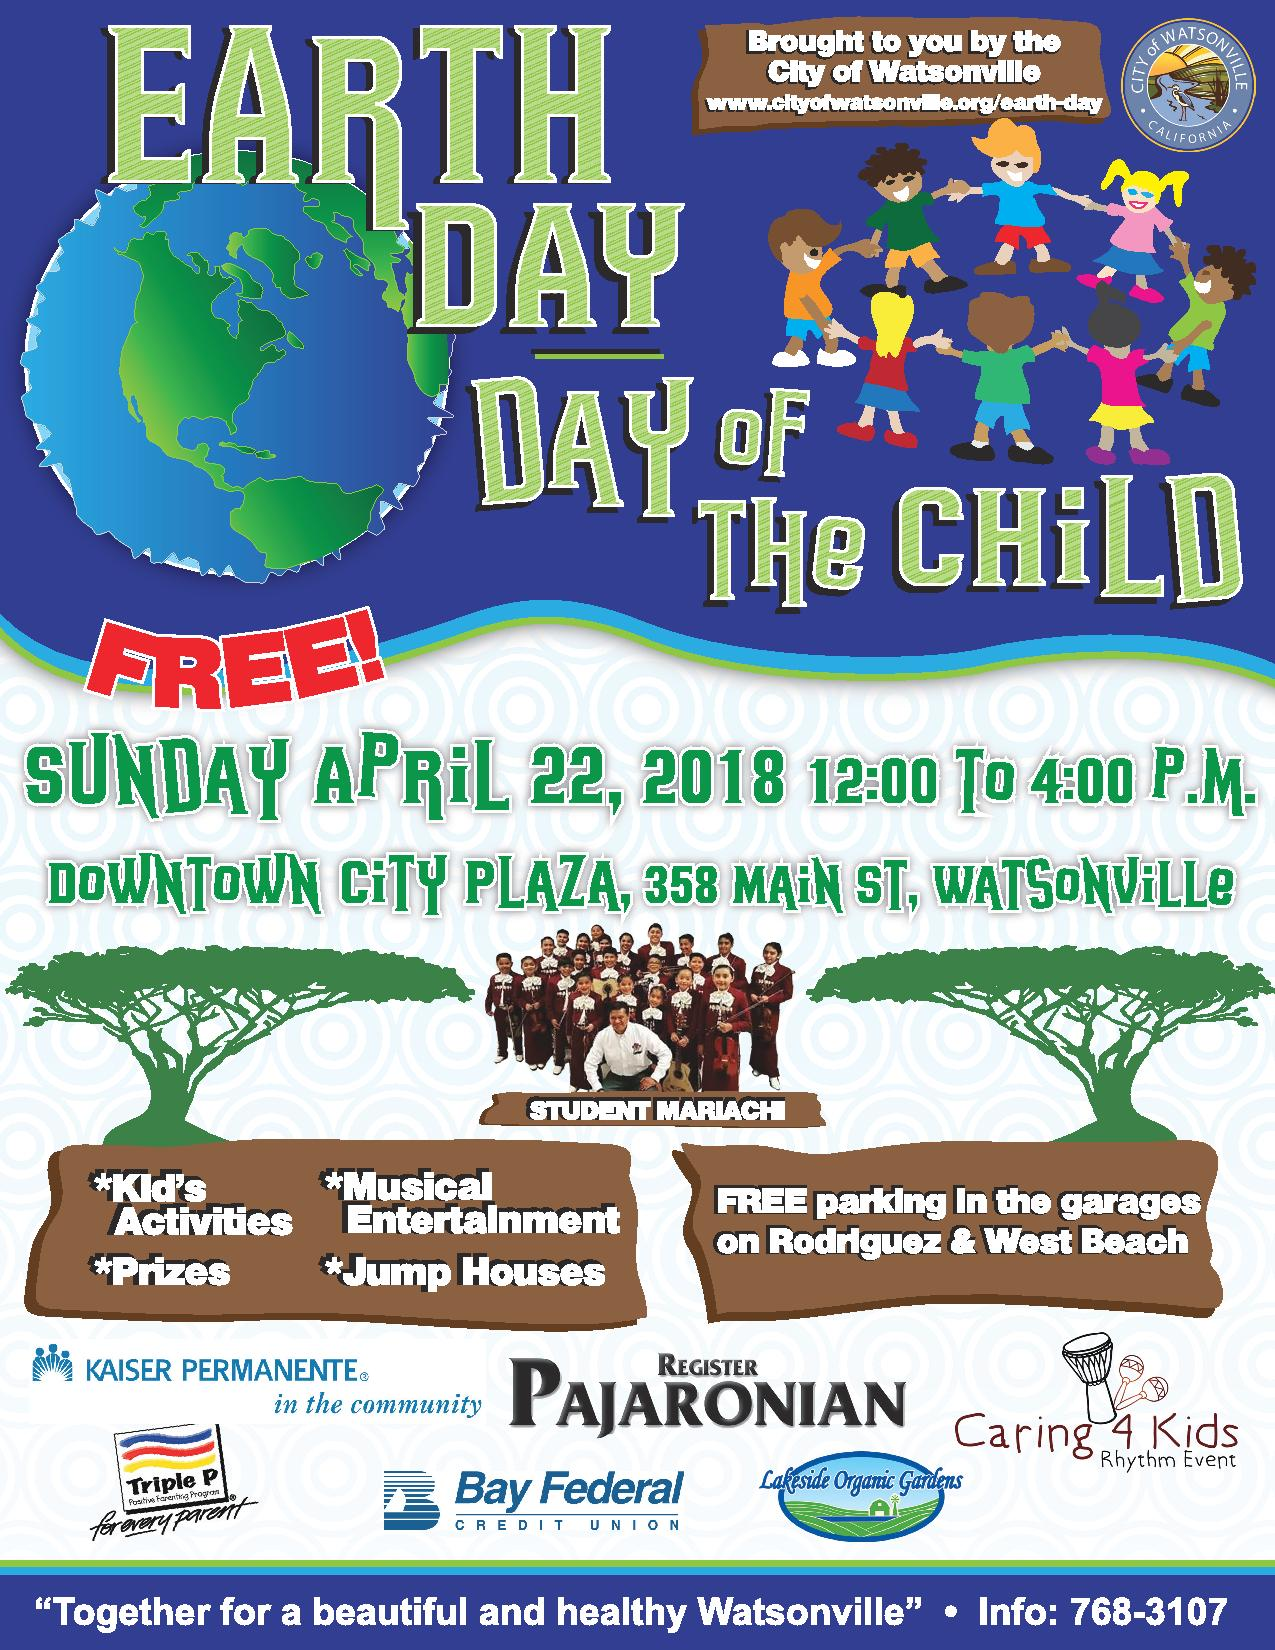 Earth Day/Day of the Child